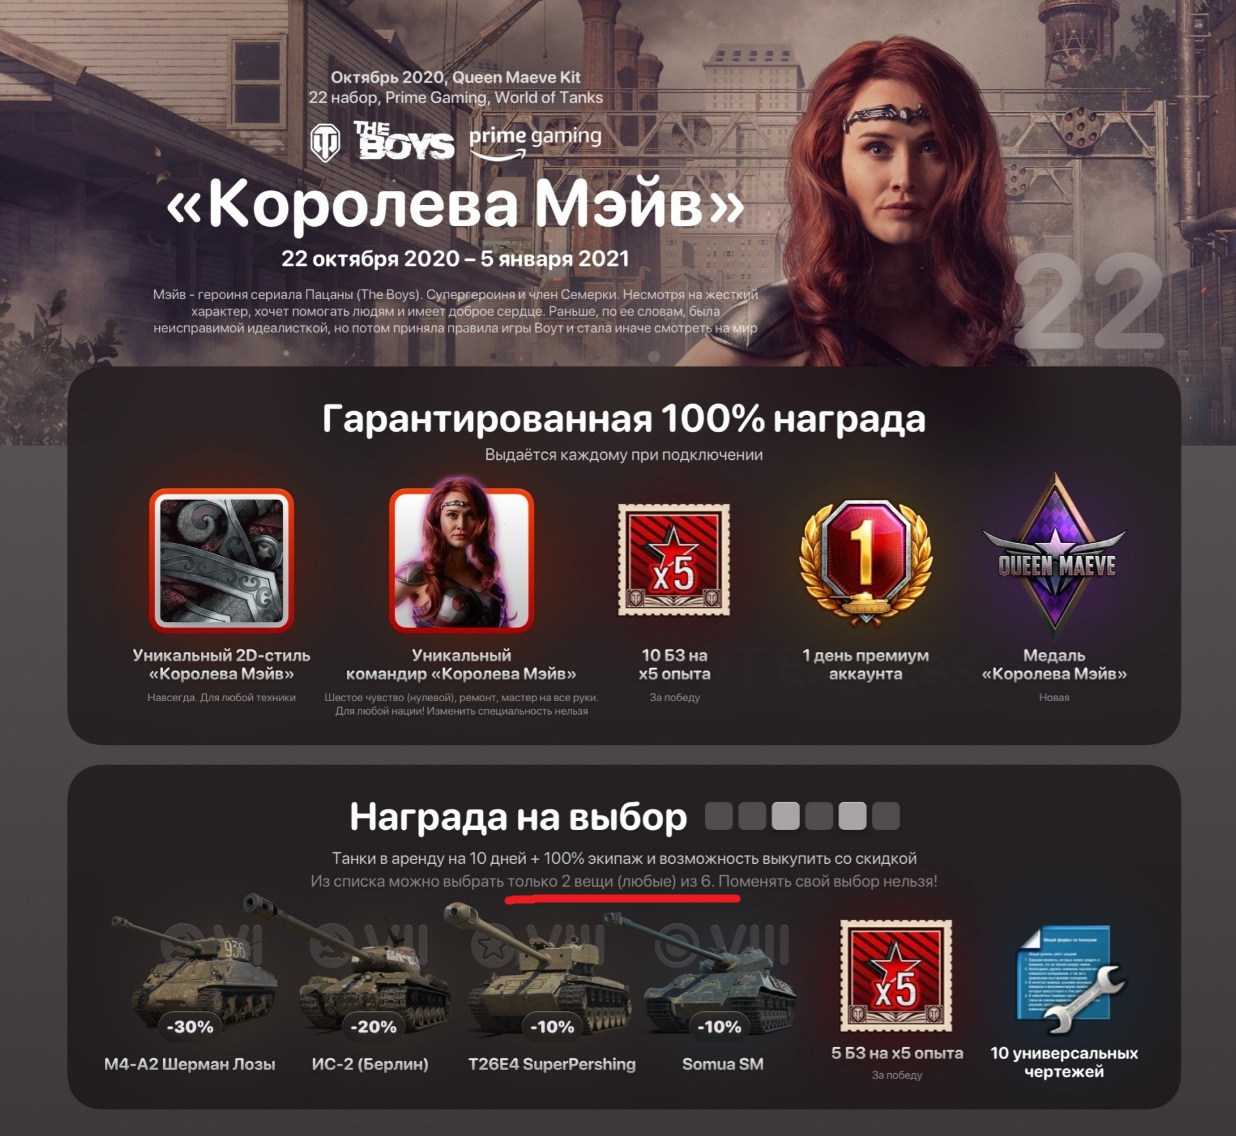 Twitch World of Tanks Queen Maeve Kit